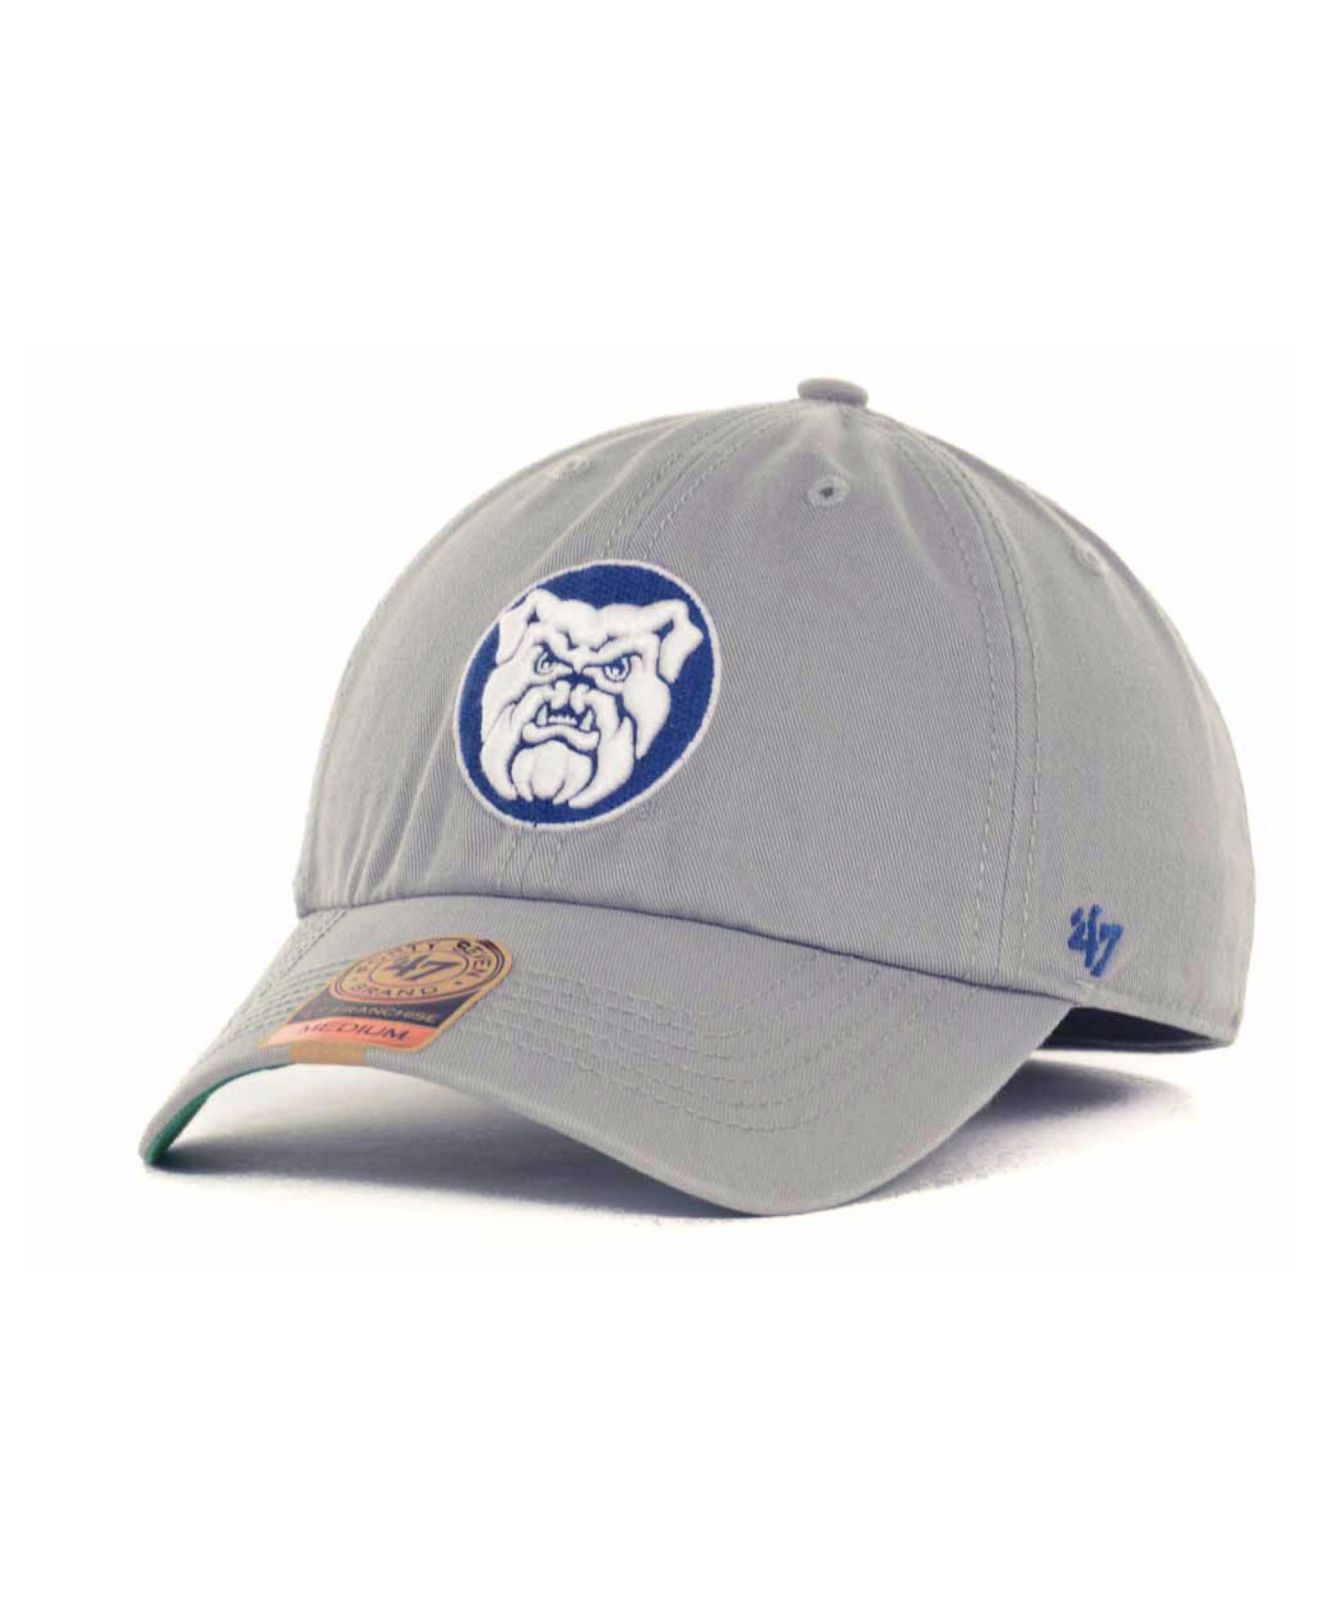 677f18cd884 Lyst - 47 Brand Butler Bulldogs Ncaa  47 Grey Franchise Cap in Gray ...